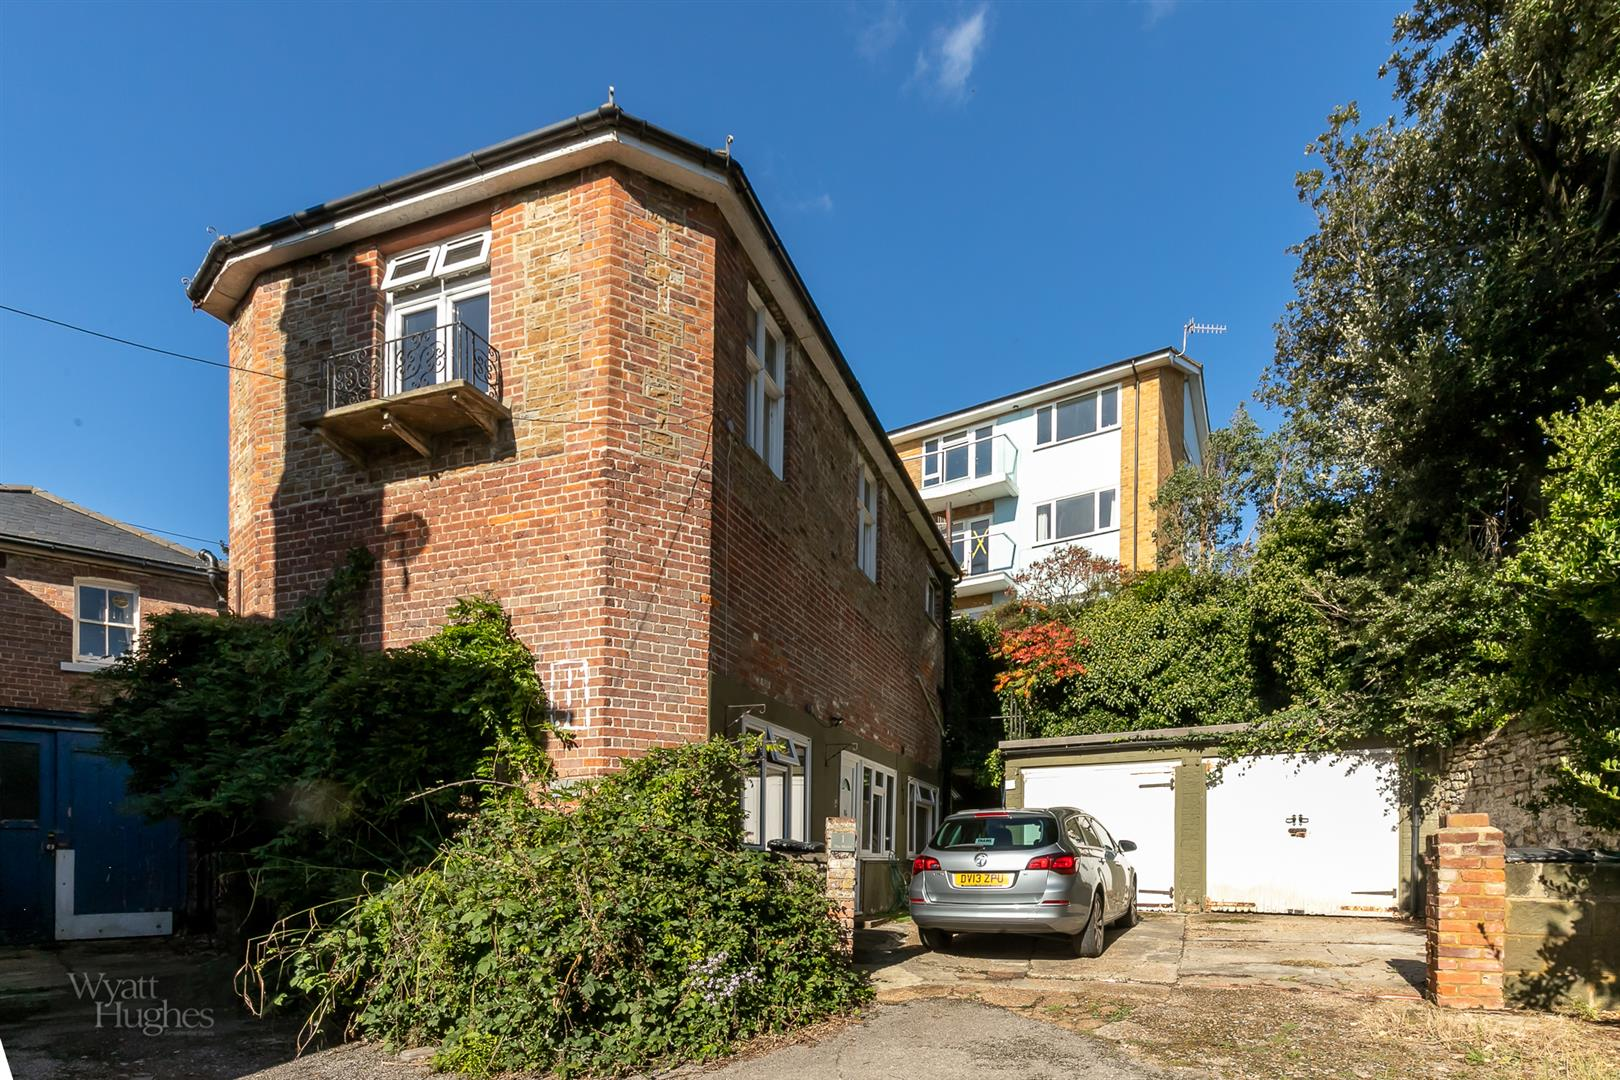 2 bed detached house for sale in West Hill Road, St. Leonards-On-Sea, TN38